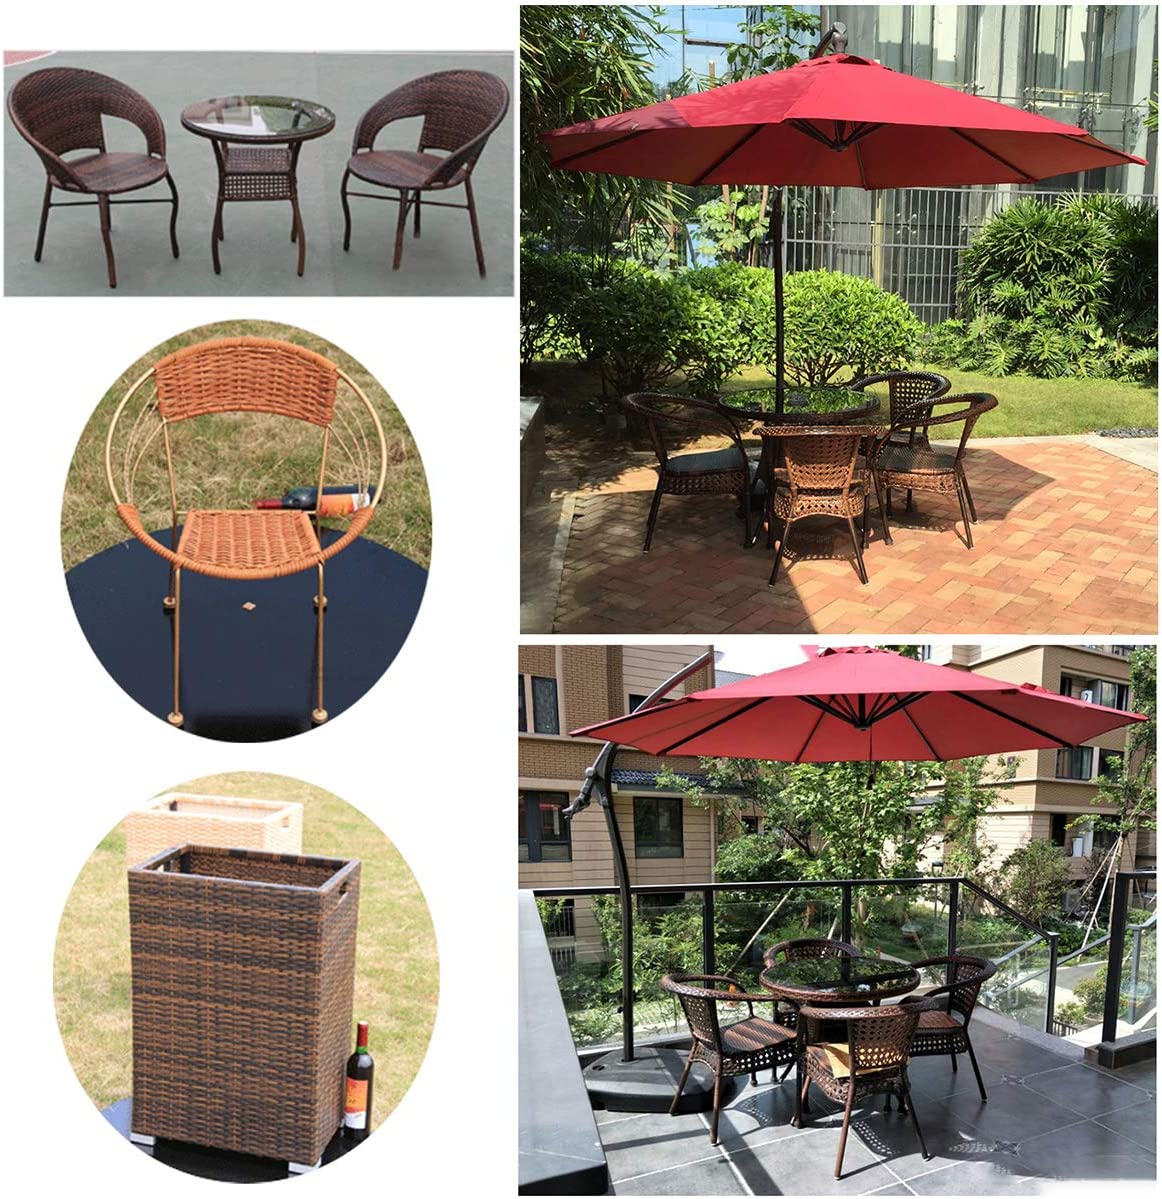 Storage Basket Synthetic Rattan Repair Knit Material Plastic Rattan for DIY Home Furniture Queenbox 3mmx10m Gradient Round Rattan Weaving Chair Table